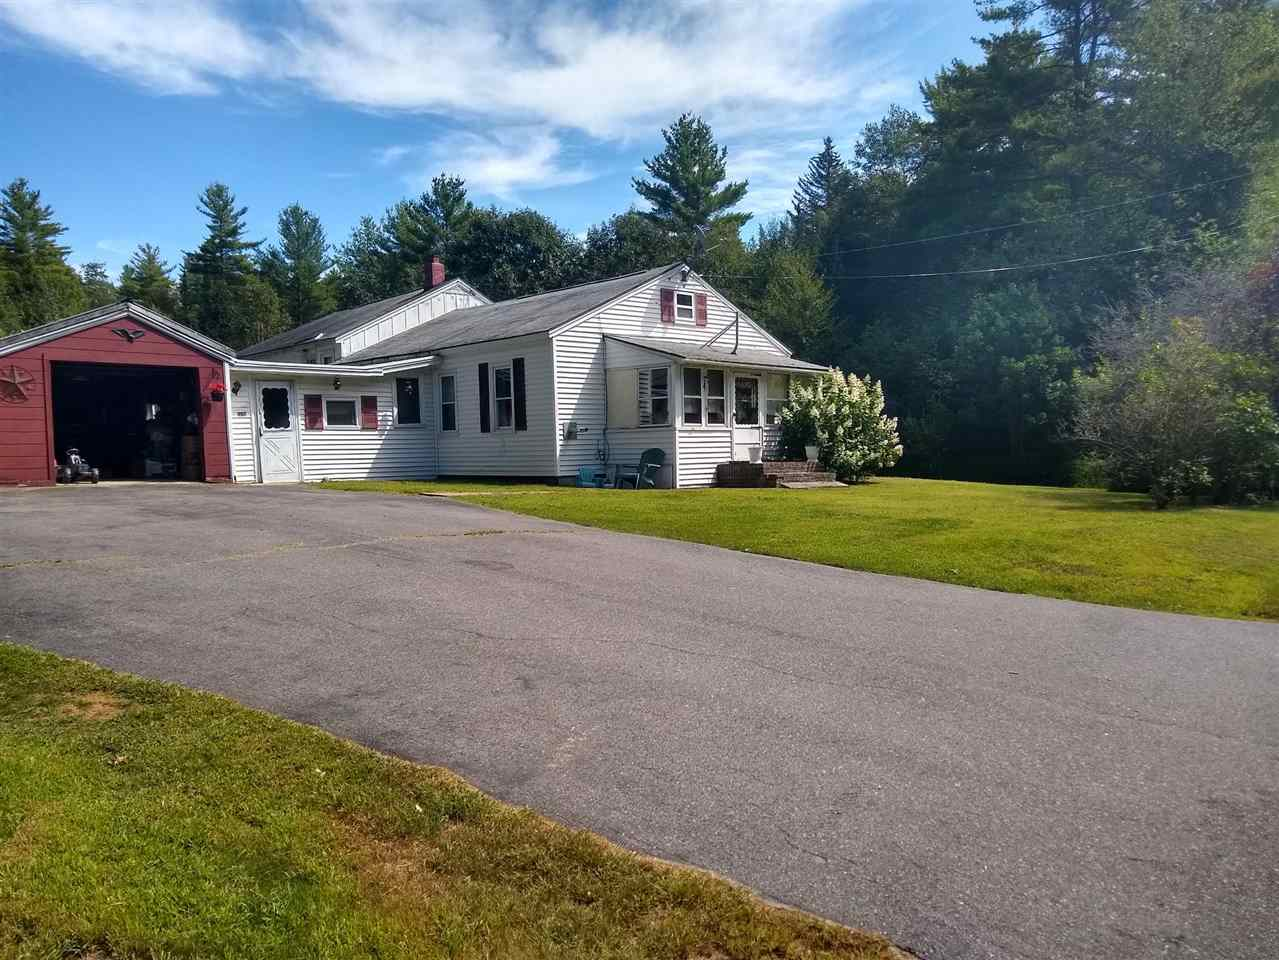 MLS 4728533: 857 NH Route 12 S, Fitzwilliam NH